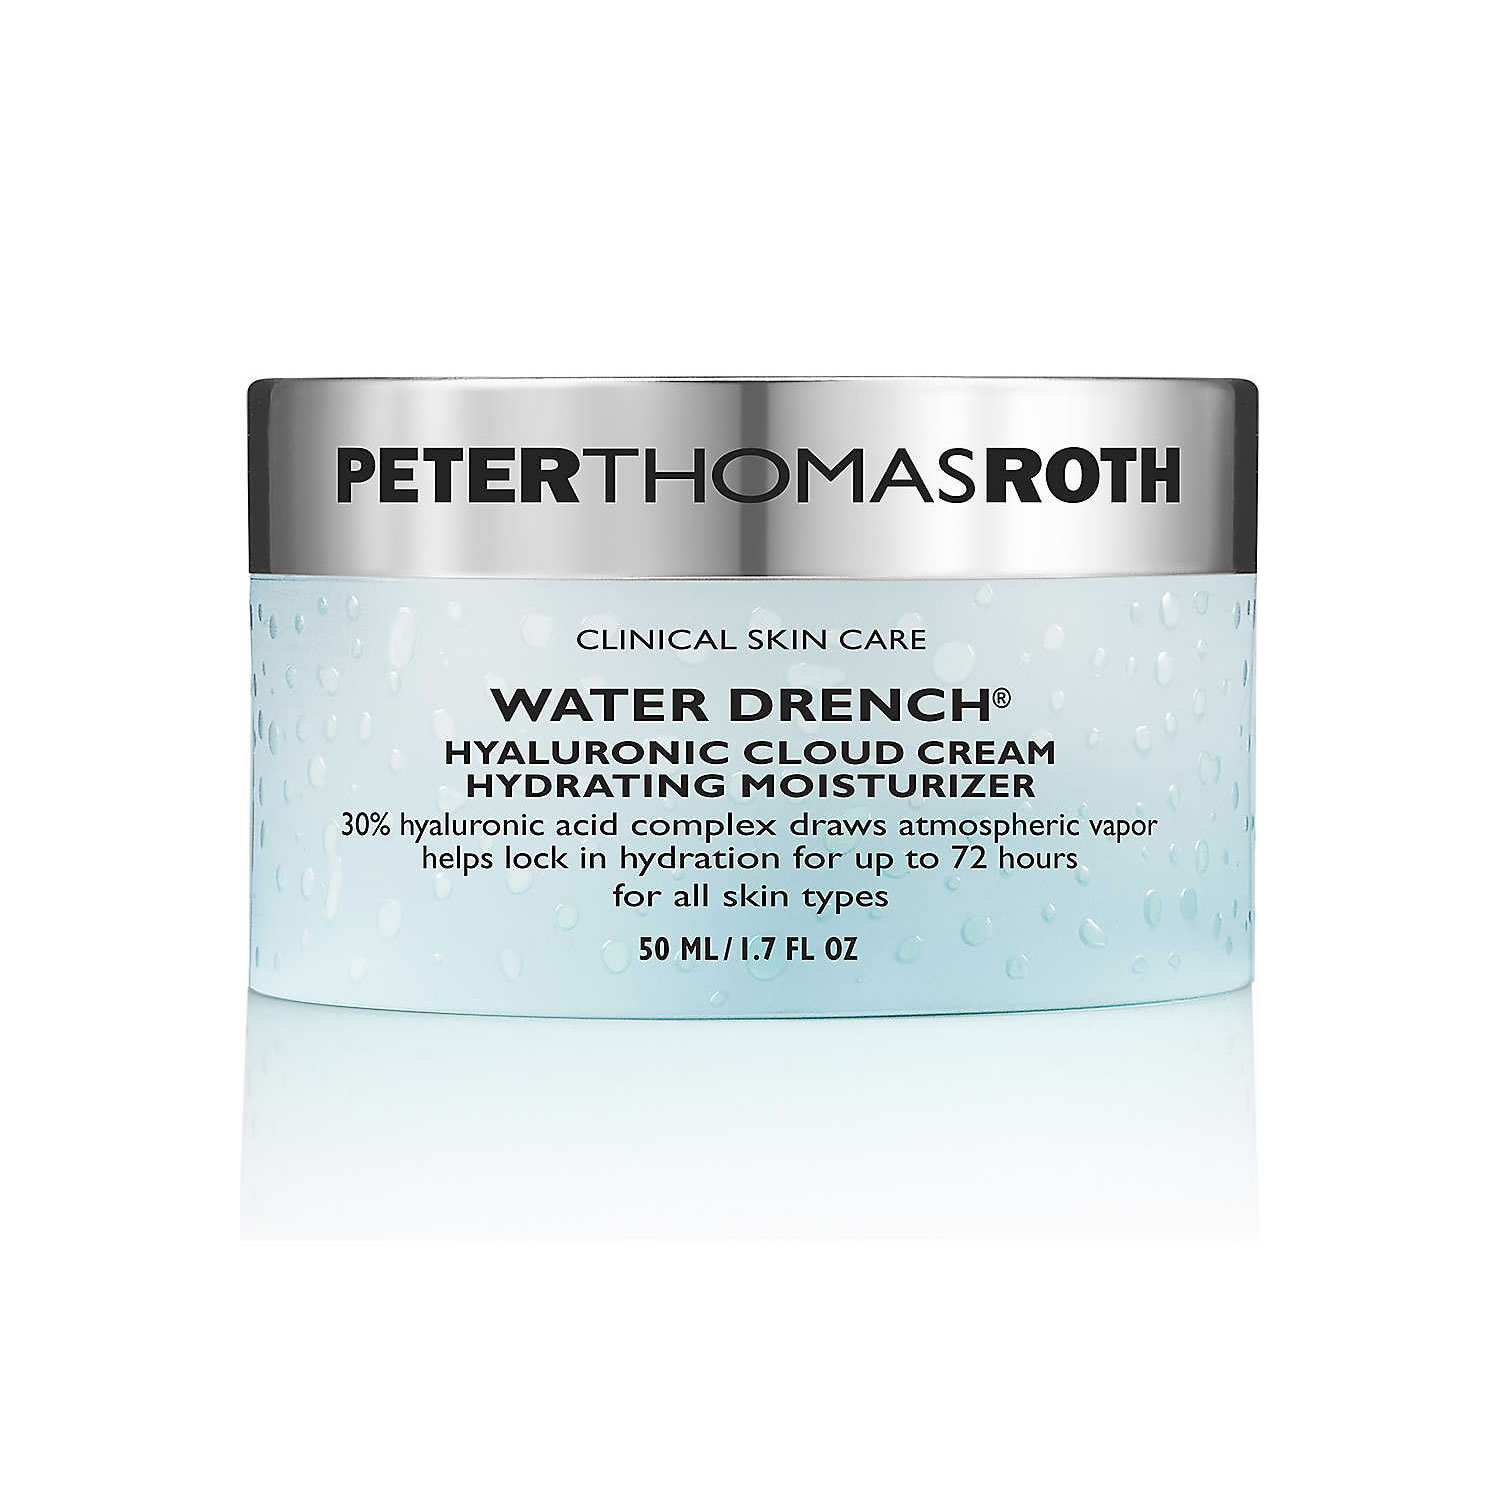 Peter Thomas Roth WATER DRENCH HYALURONIC CLOUD CREAM (1.6 fl oz)